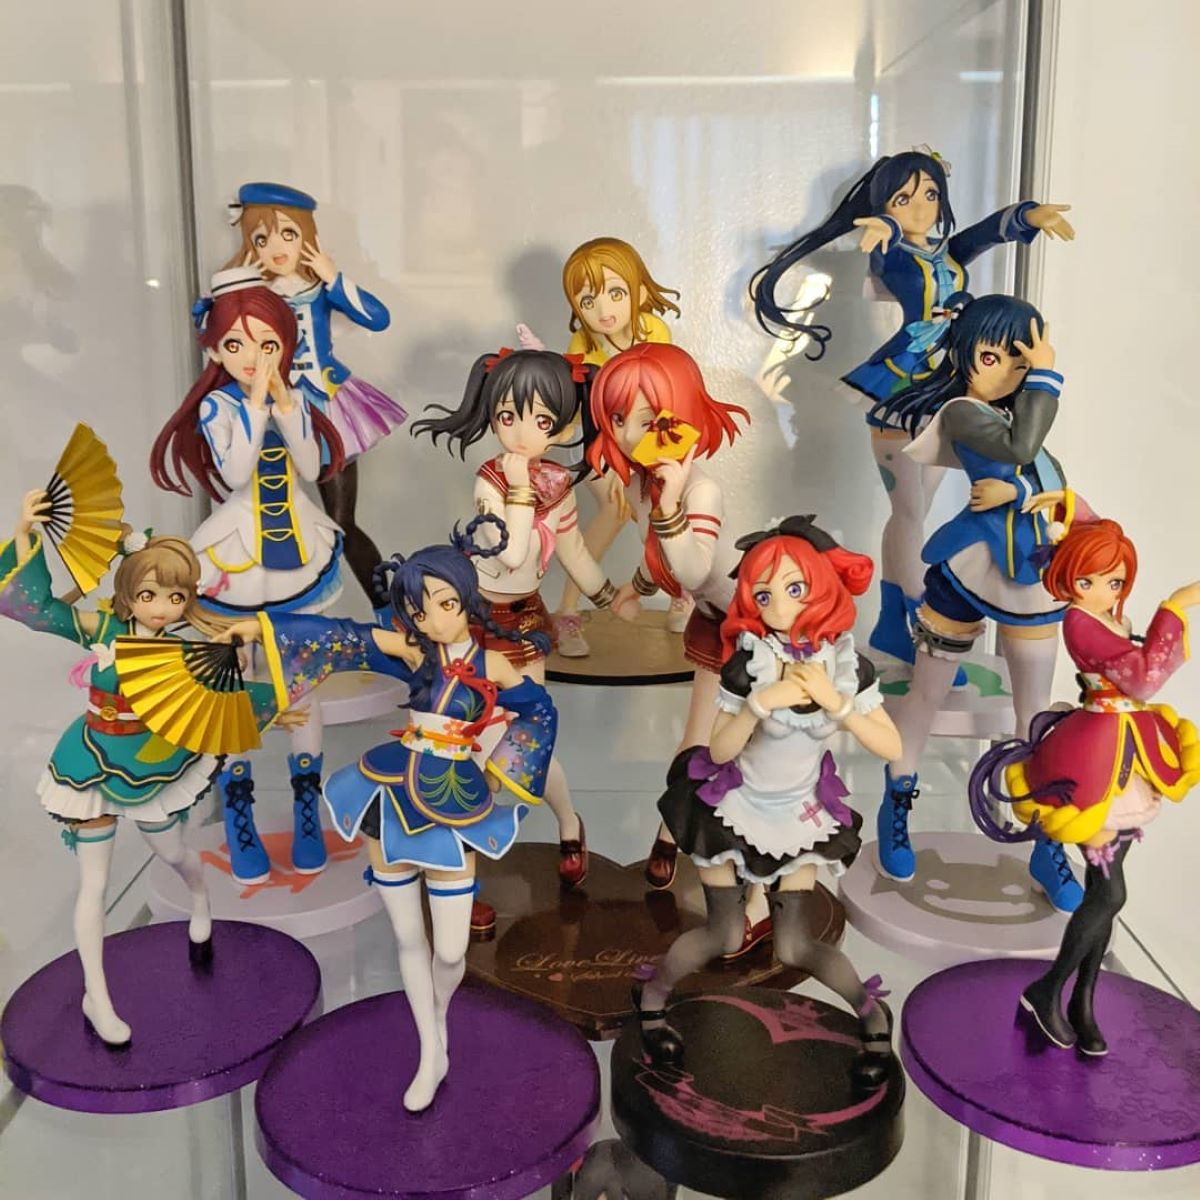 Love Live! Figures displayed on a shelf using risers | Risers | Fun Ways to Display Your Figure Collection